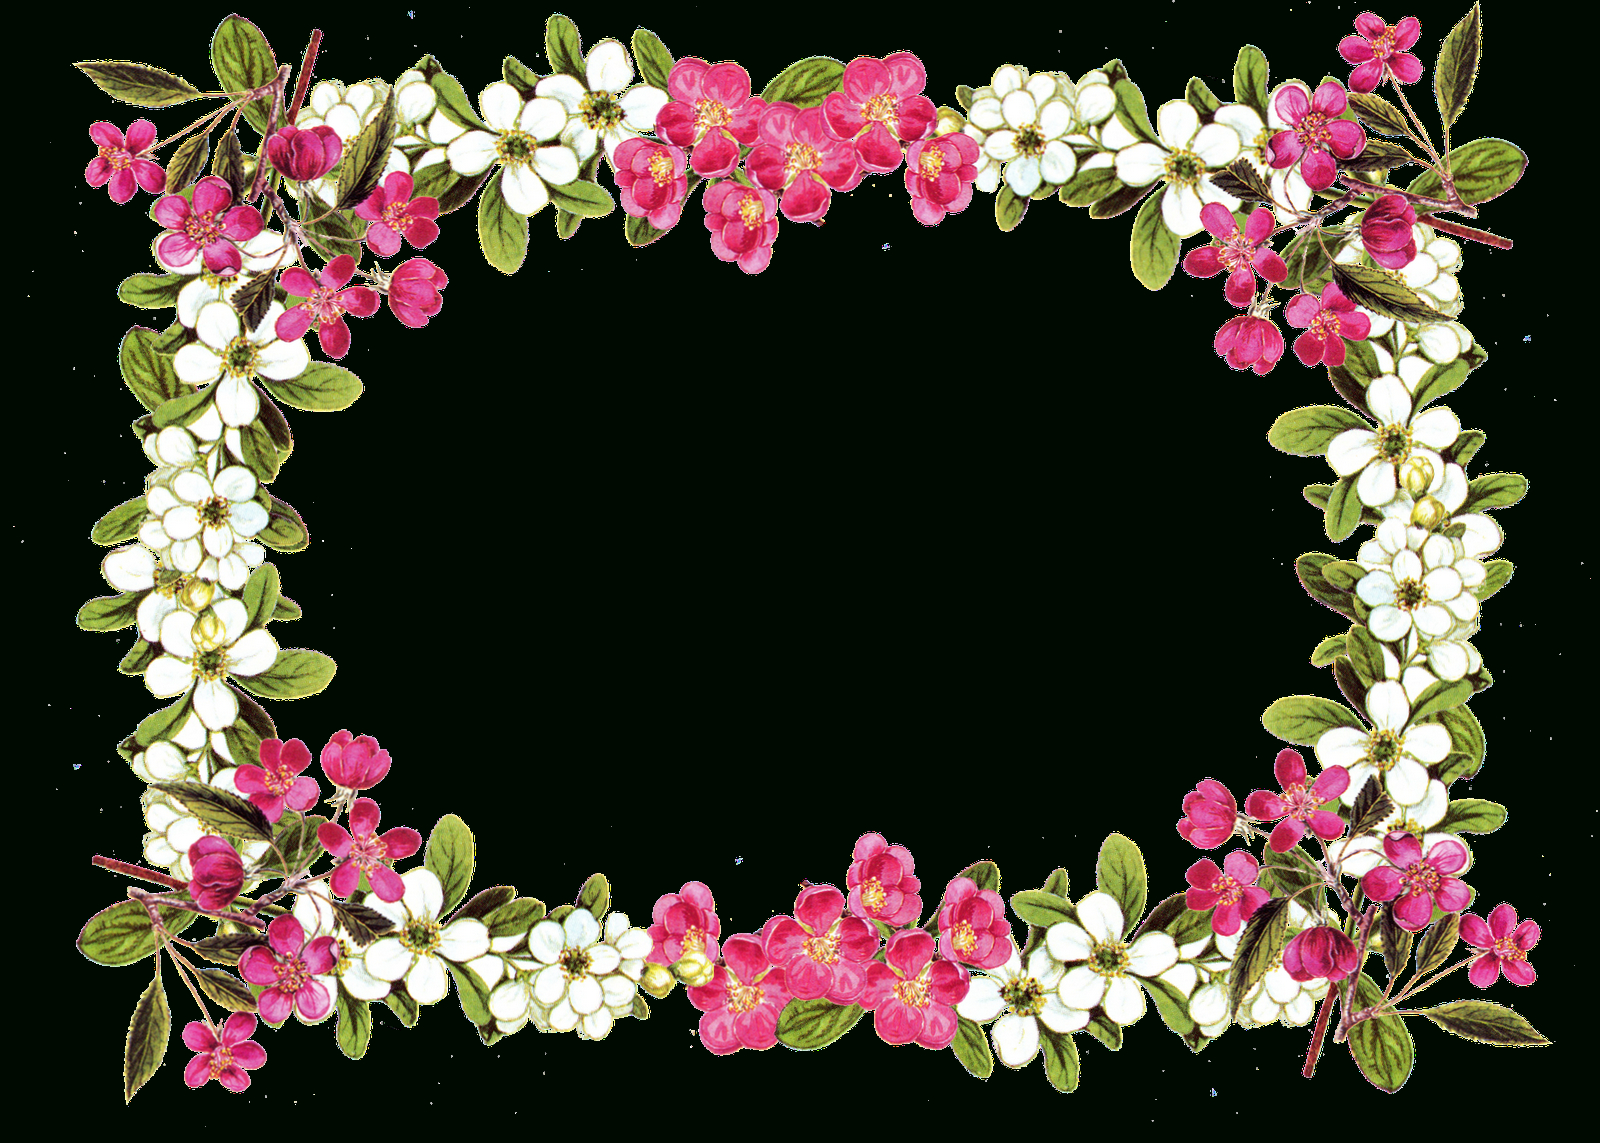 Picture-Flower Borders And Frames - Rr Collections - Free Printable Clip Art Borders